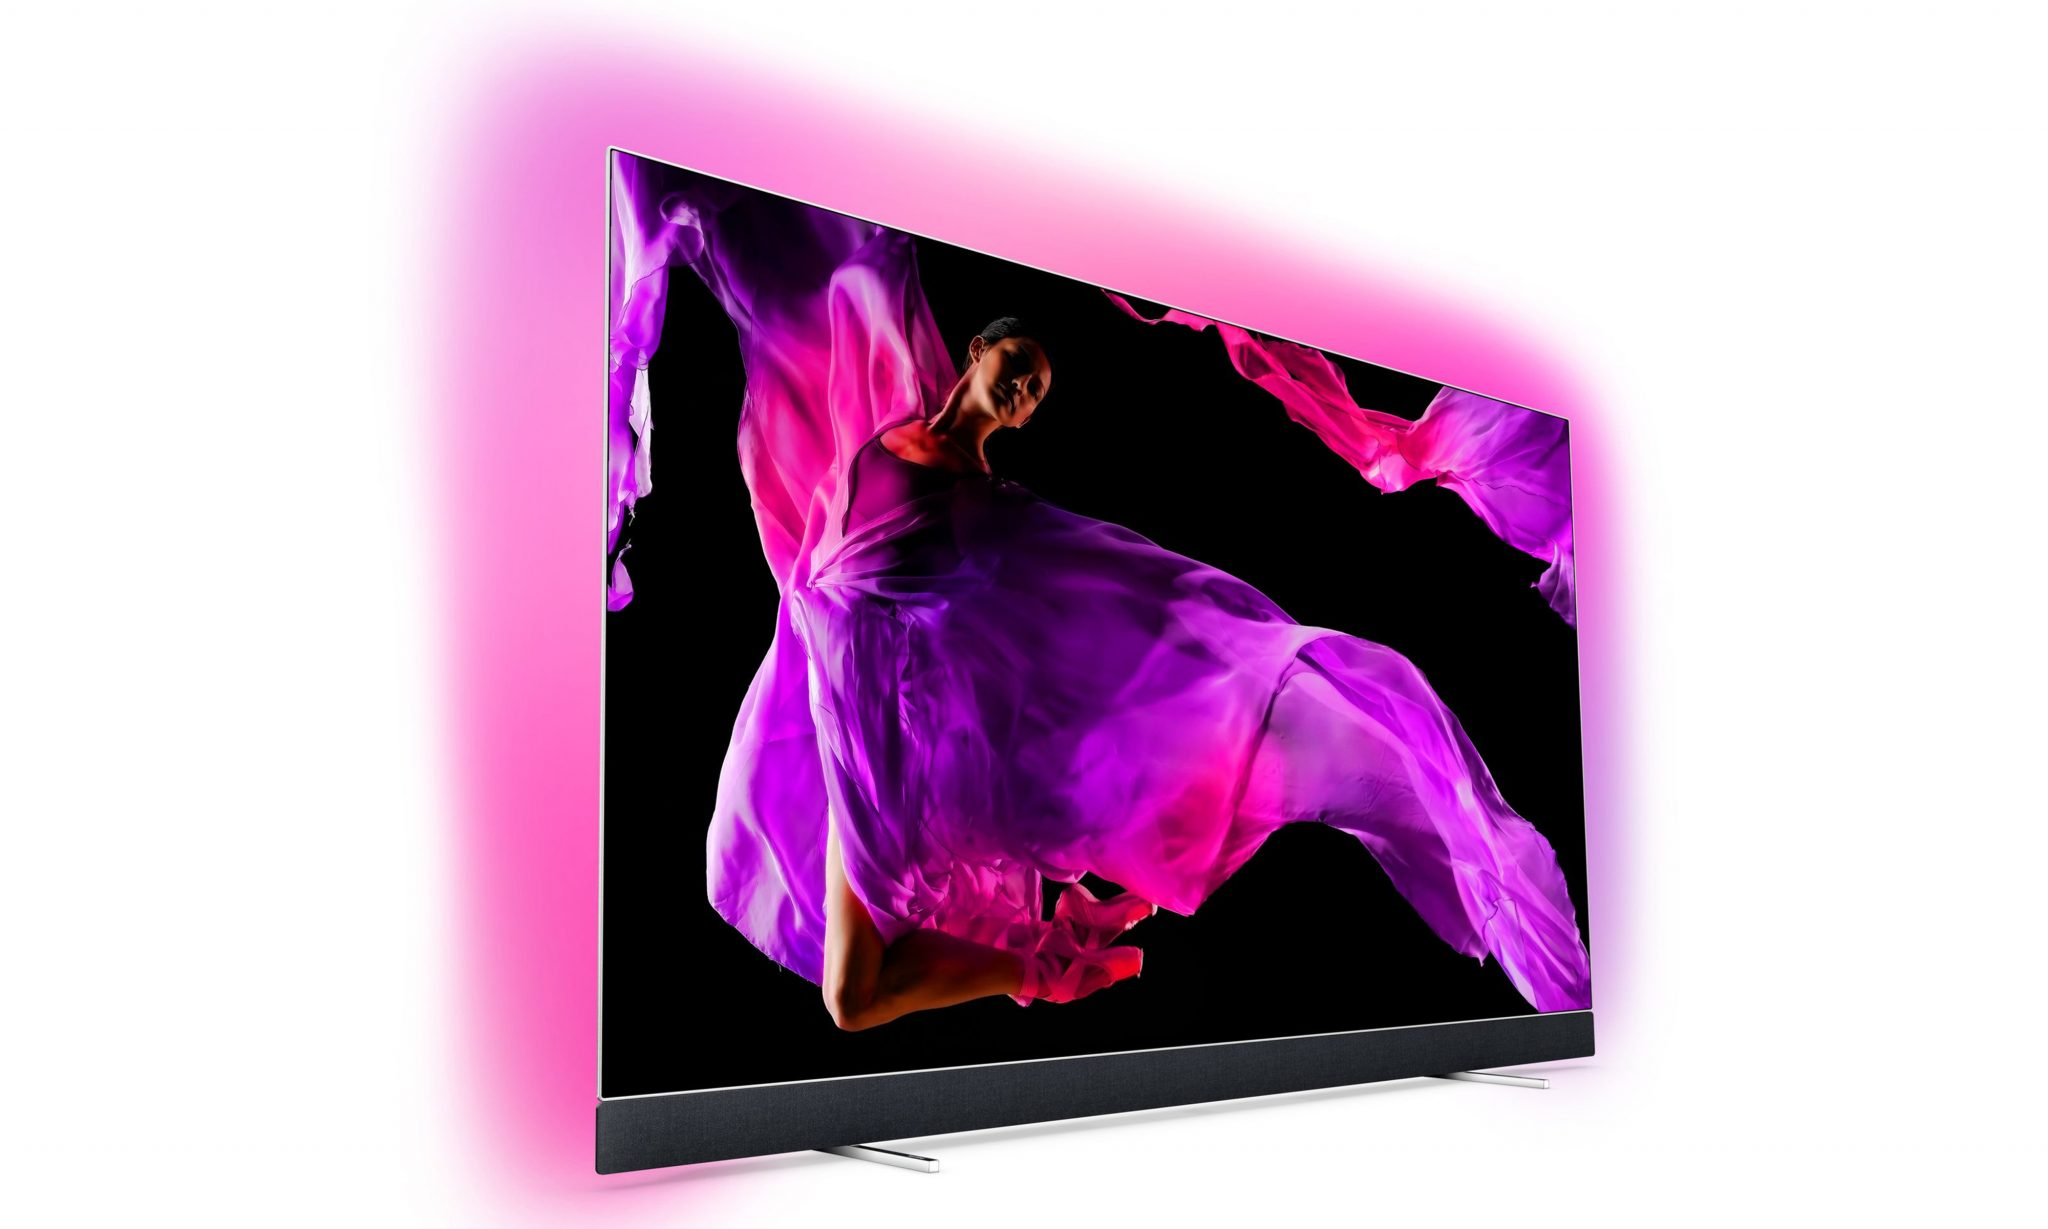 Philips OLED+ 903 TV- the matchless treat for your eyes